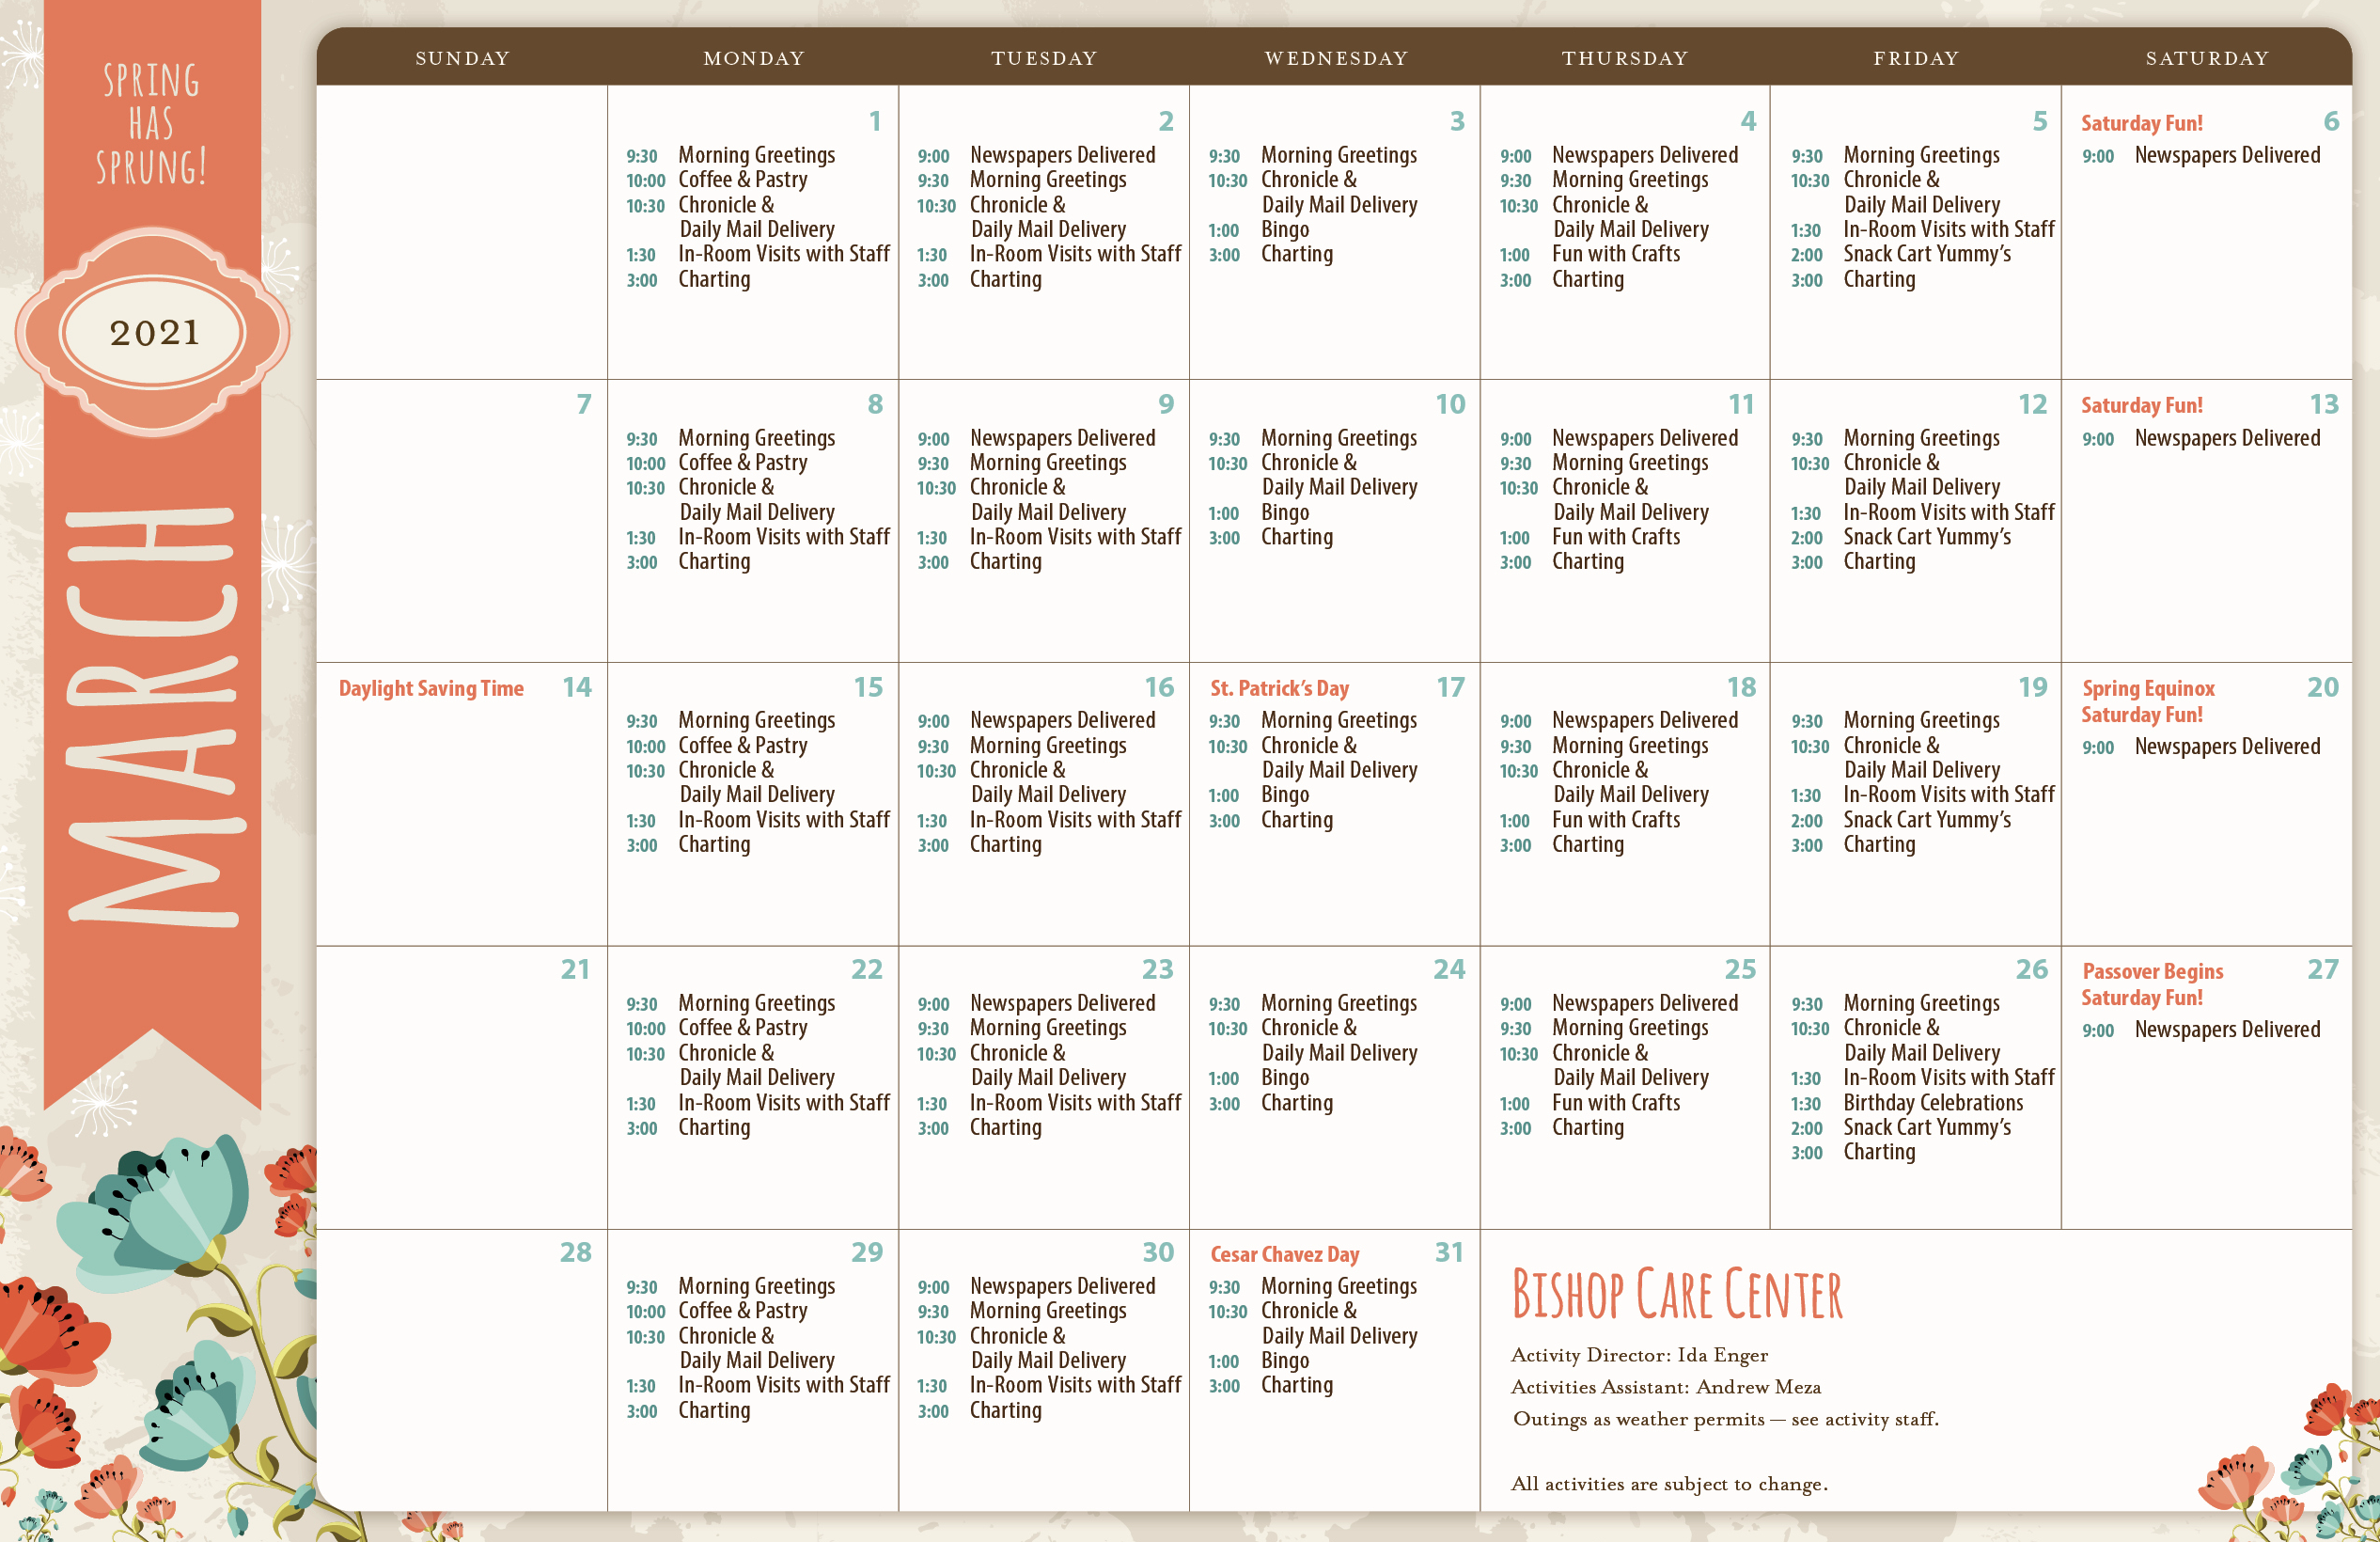 March 2021 Bishop Care Center Activity Calendar